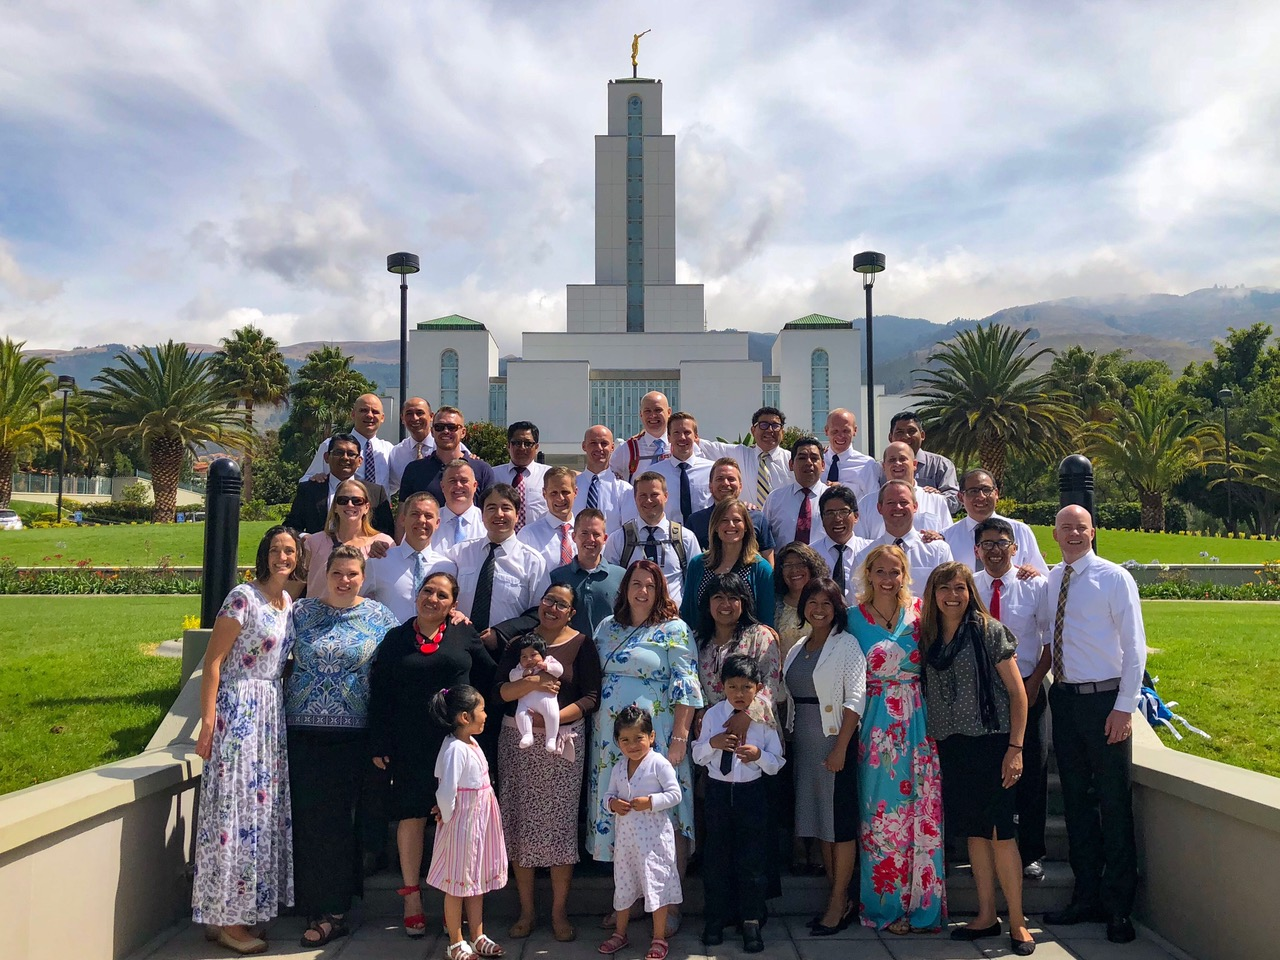 Some of the mission reunion group pose for a photo outside the Cochabamba Bolivia Temple in October when they returned for a reunion trip.